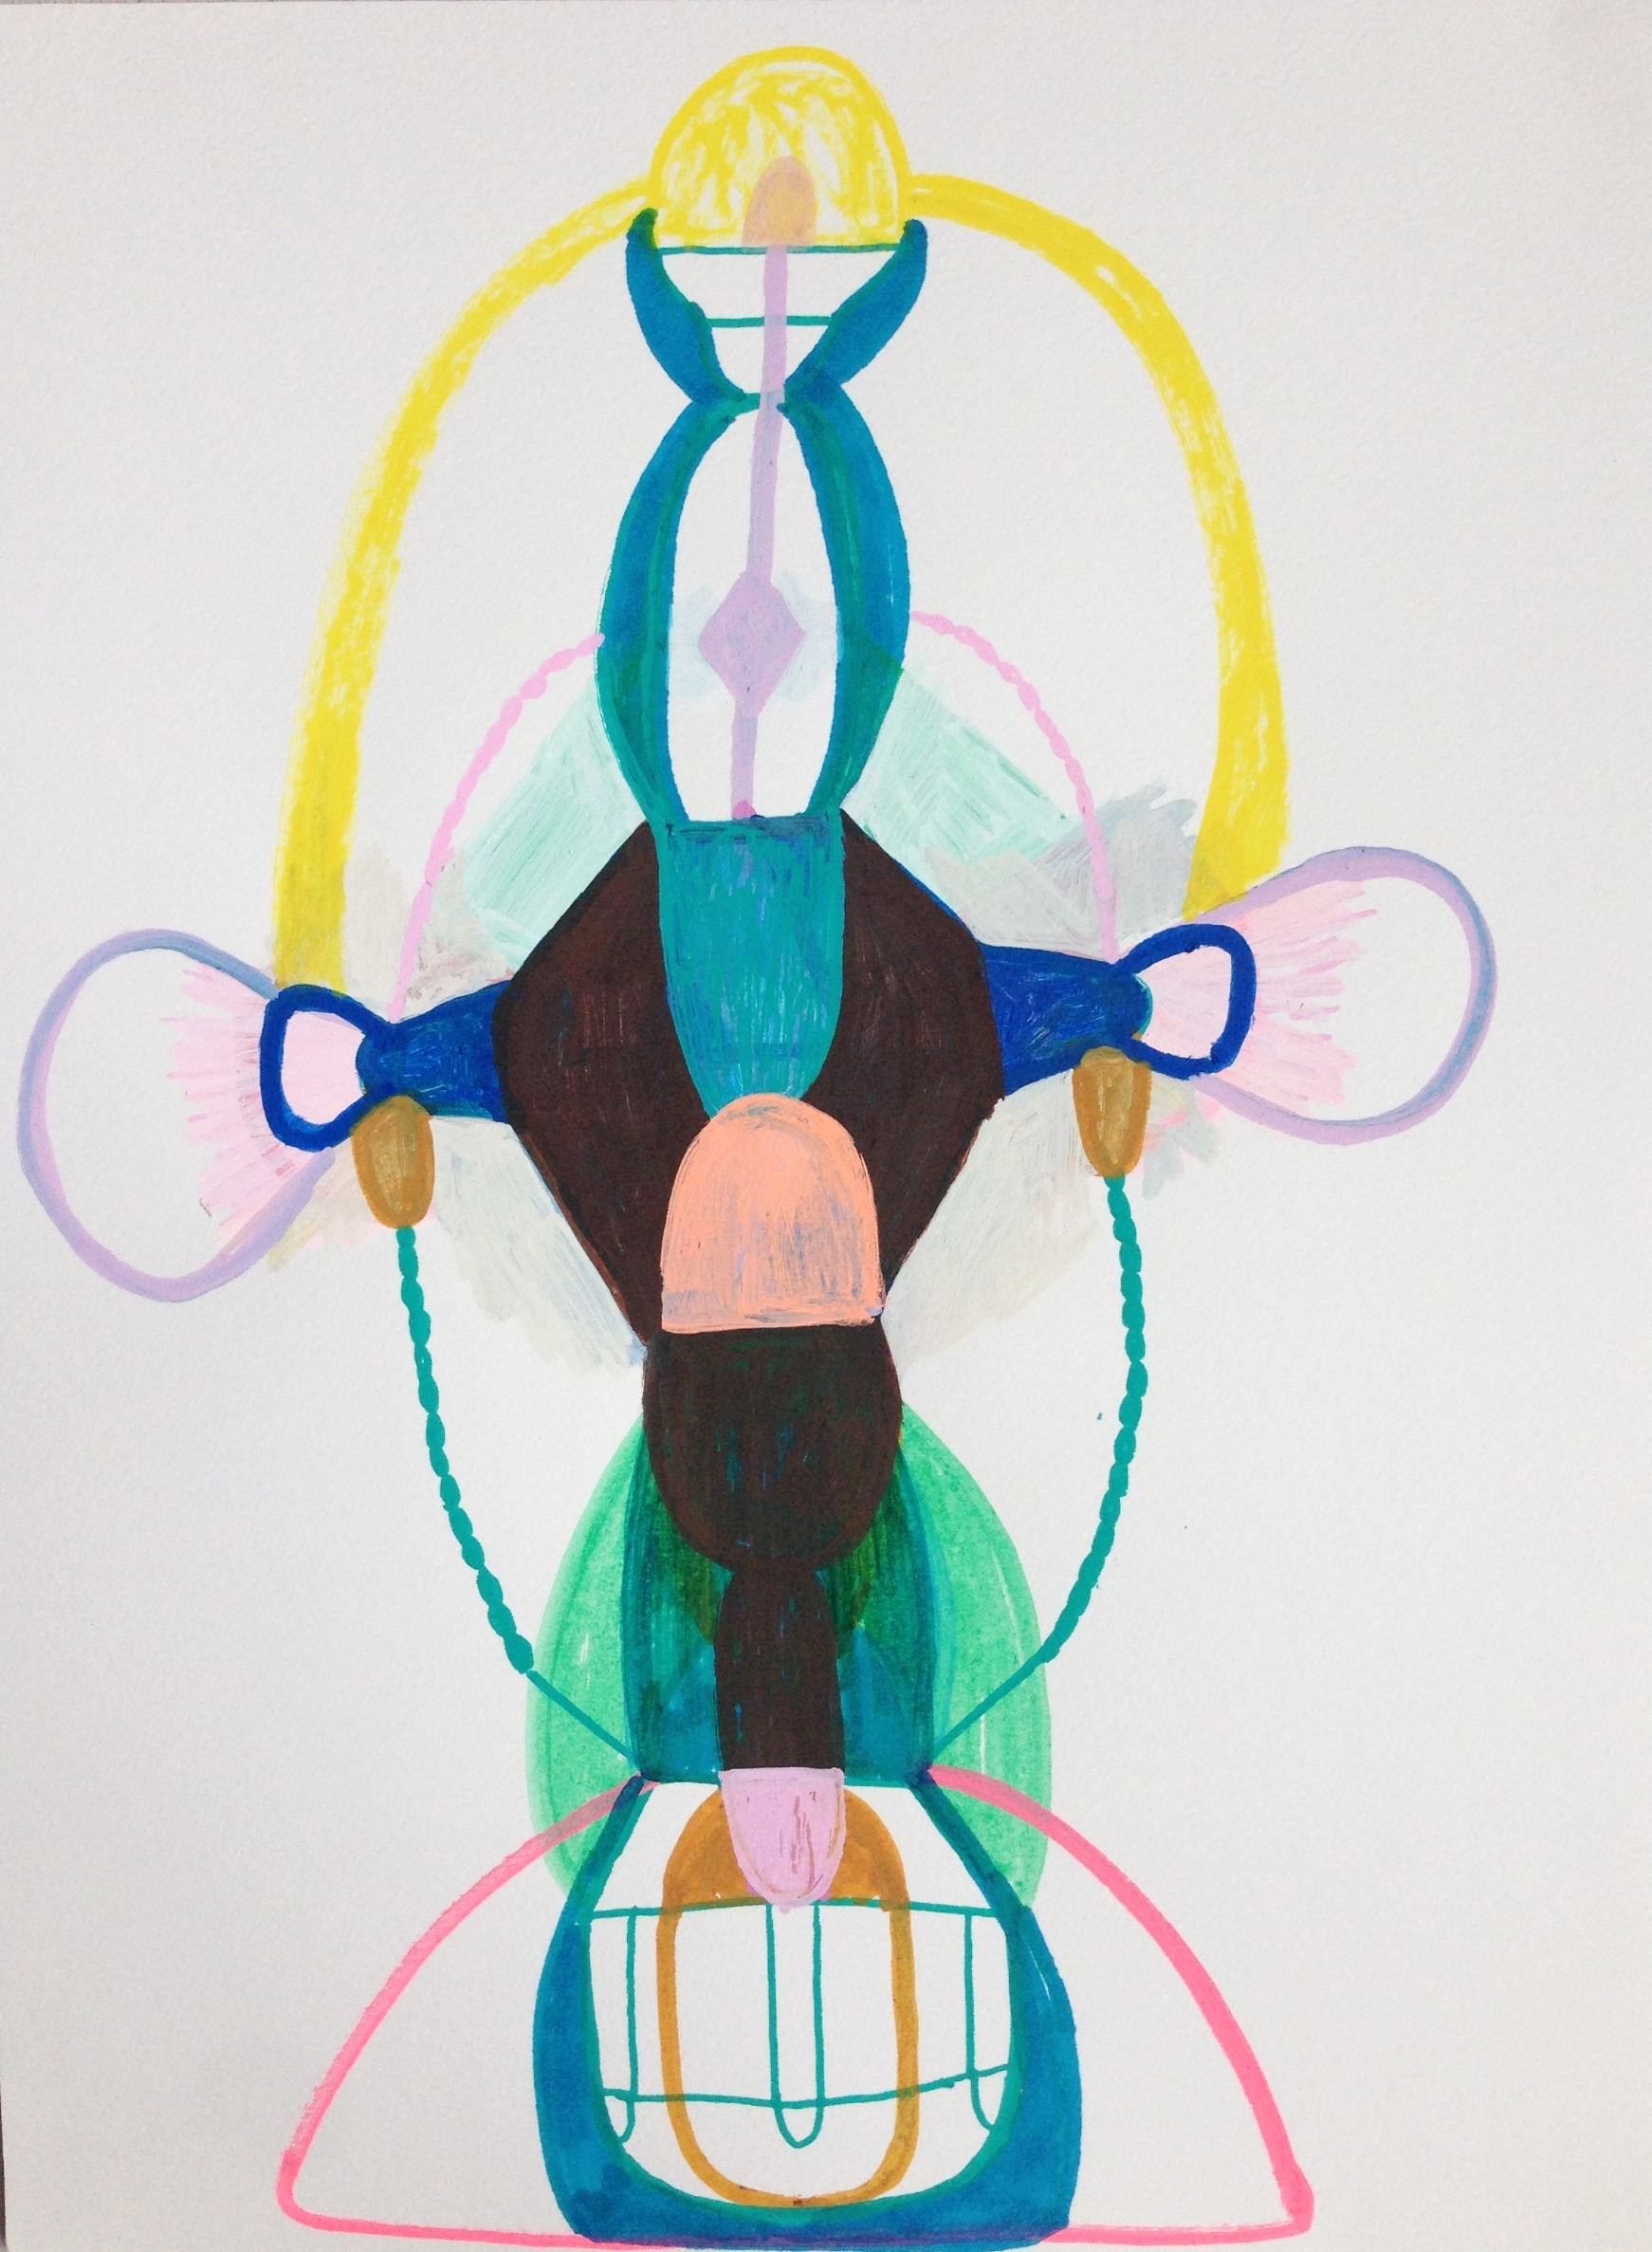 """Marie J.Engelsvold. """"Release"""" 29,7 x 21 cm. Acrylic markers on paper. 2017"""